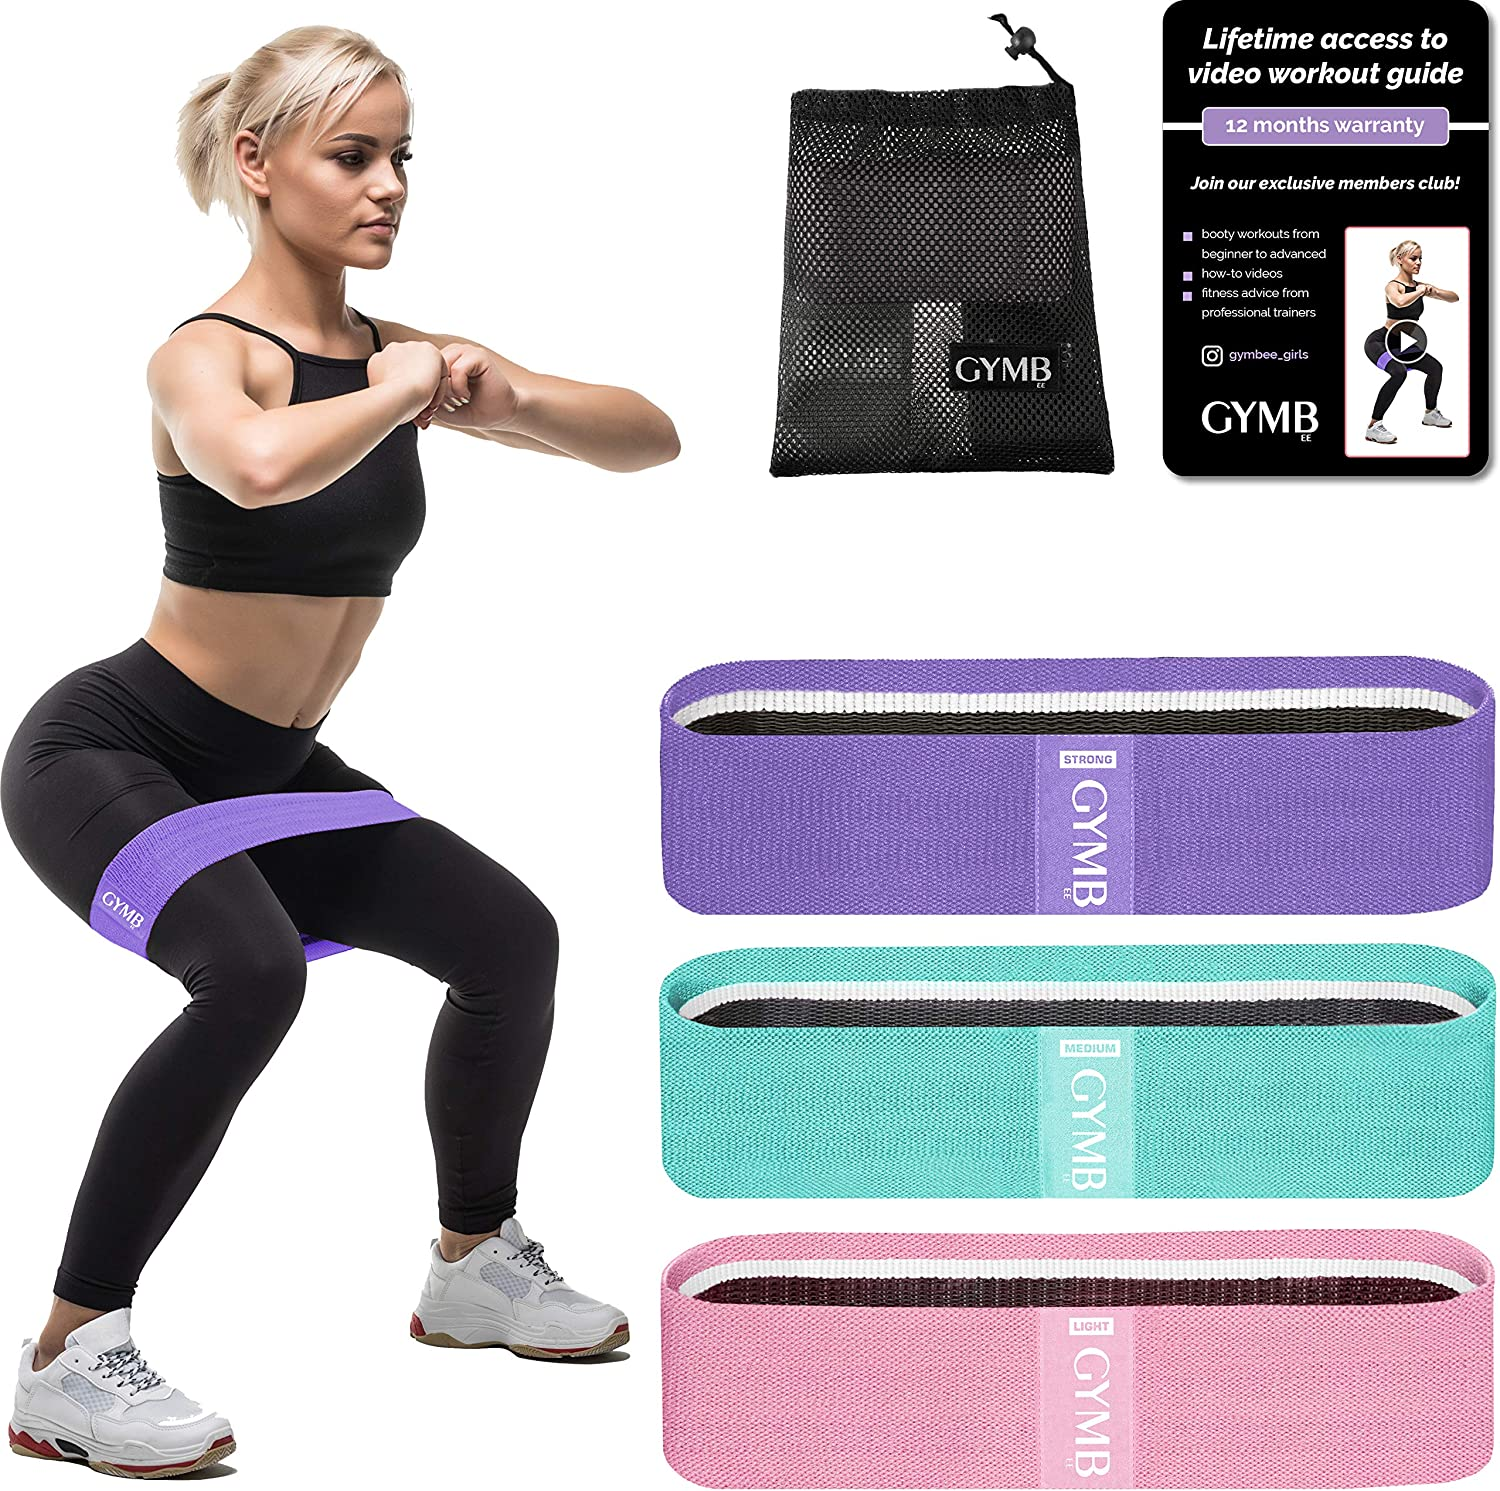 Gymbee 3 Fabric Resistance Bands for Legs and Butt Loop Exercise Bands Video Included Booty Workout Bands for Women Glute Bands Non Slip Squat Bands with 3 Resistant Levels